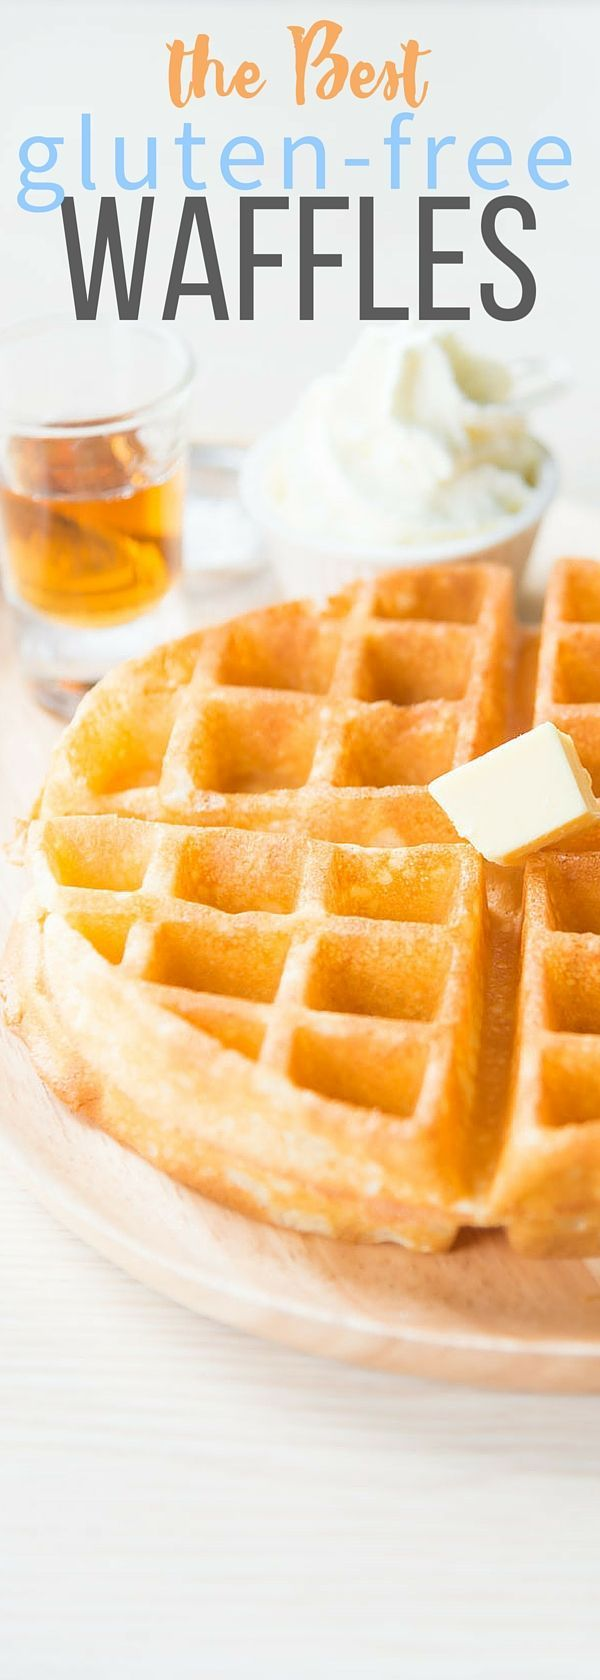 This is the best gluten-free waffle recipe! Crisp on the outside and soft on the inside...perfect for Sunday breakfast.